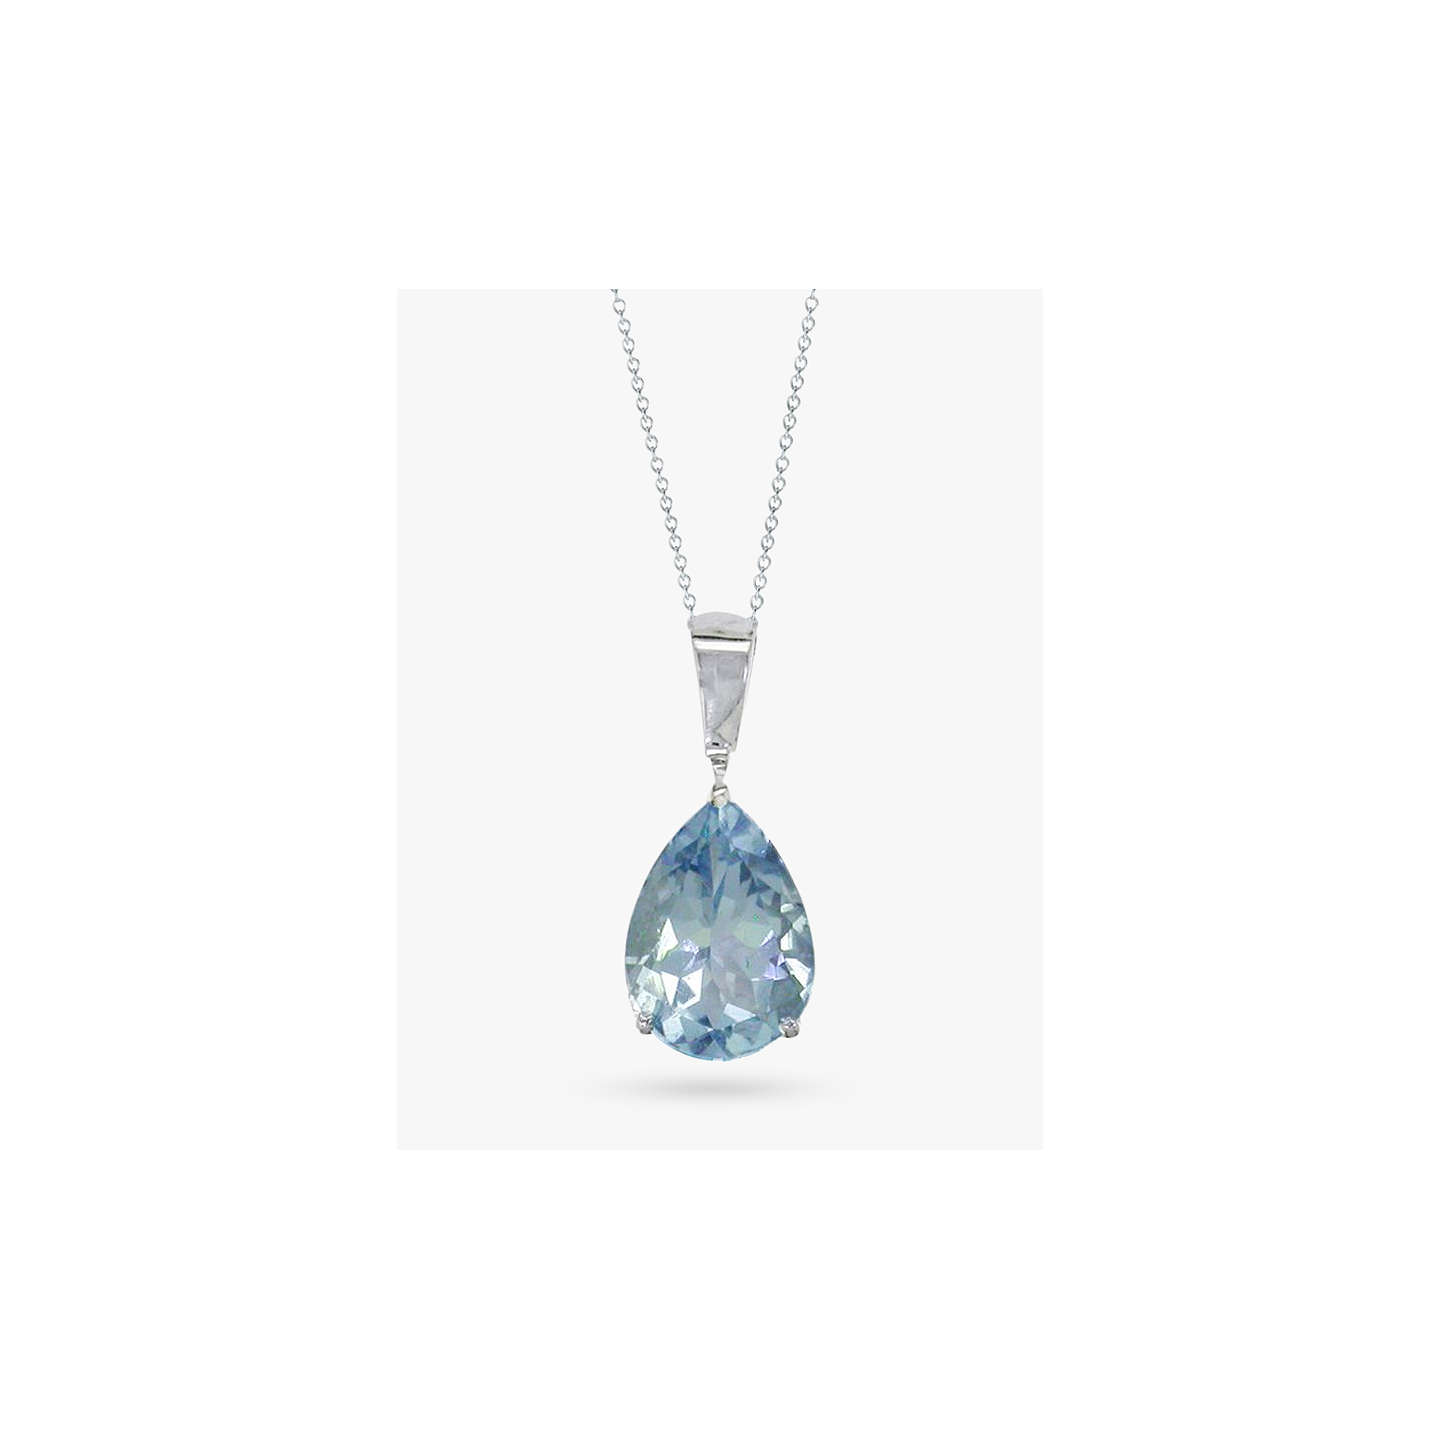 pendant jewelry necklace barzel il ruth small design product fullxfull aquamarine